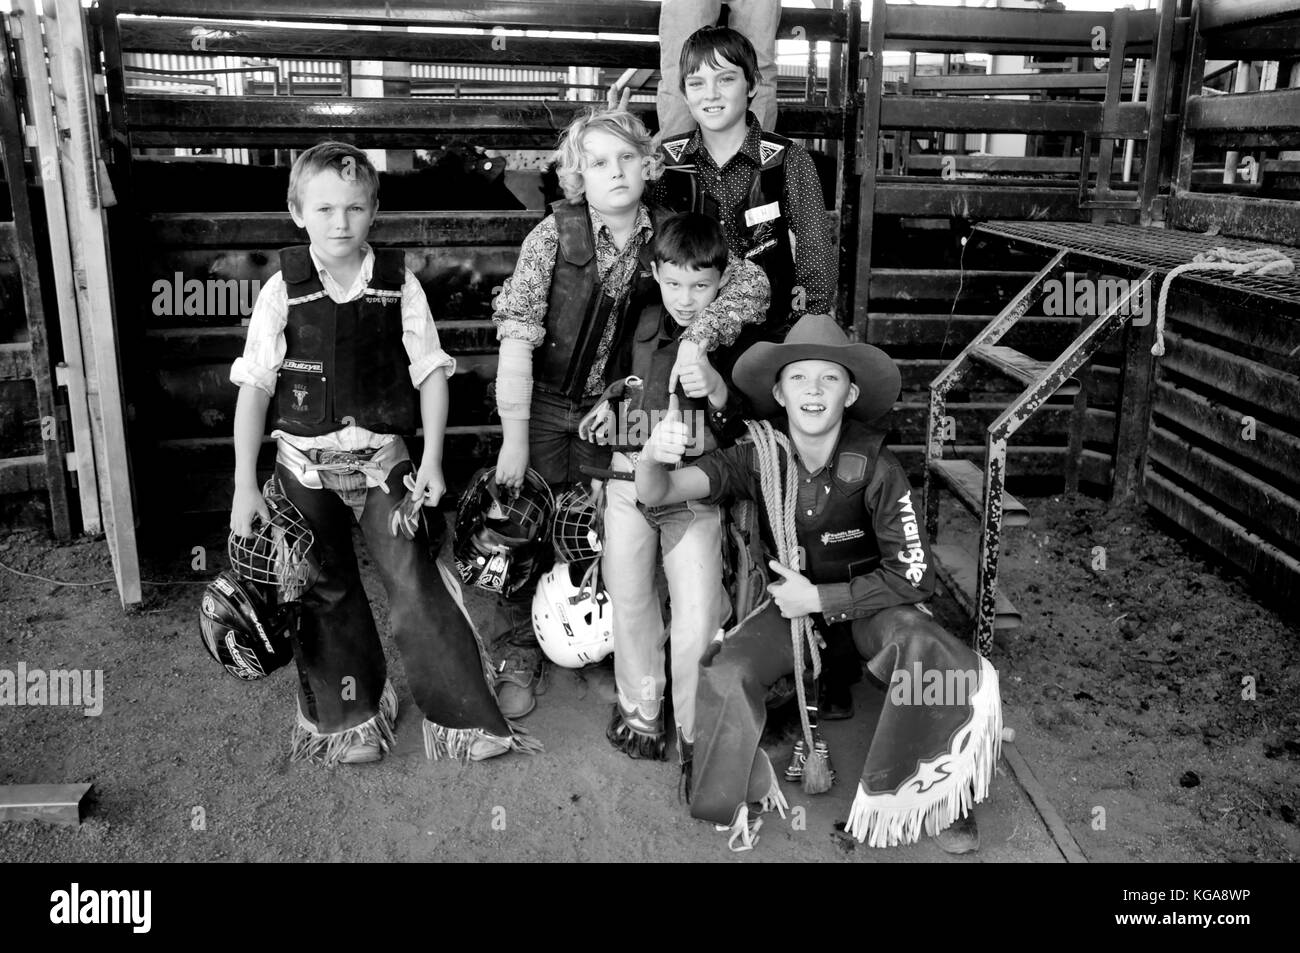 JUNIOR BULL RIDERS - Stock Image